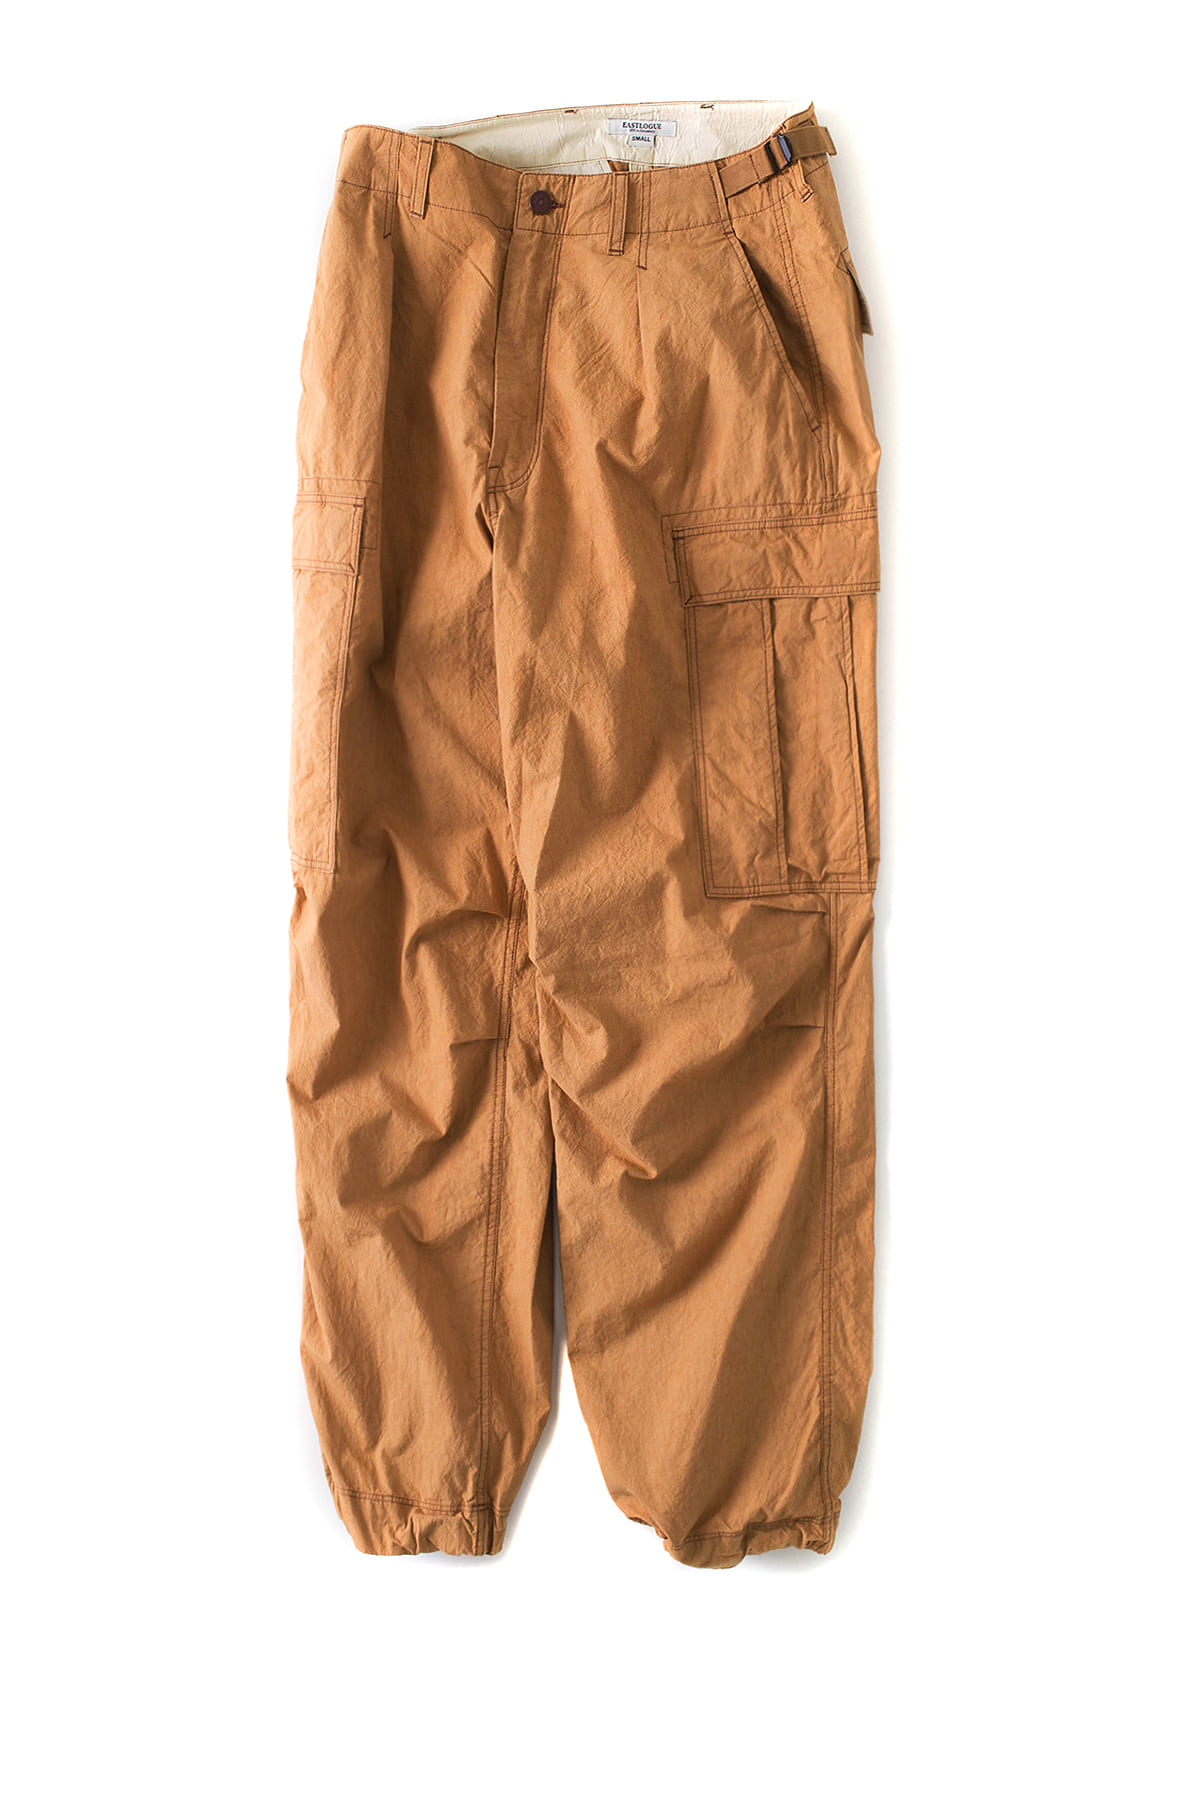 Eastlogue : Battel Field Pants (Ocher)